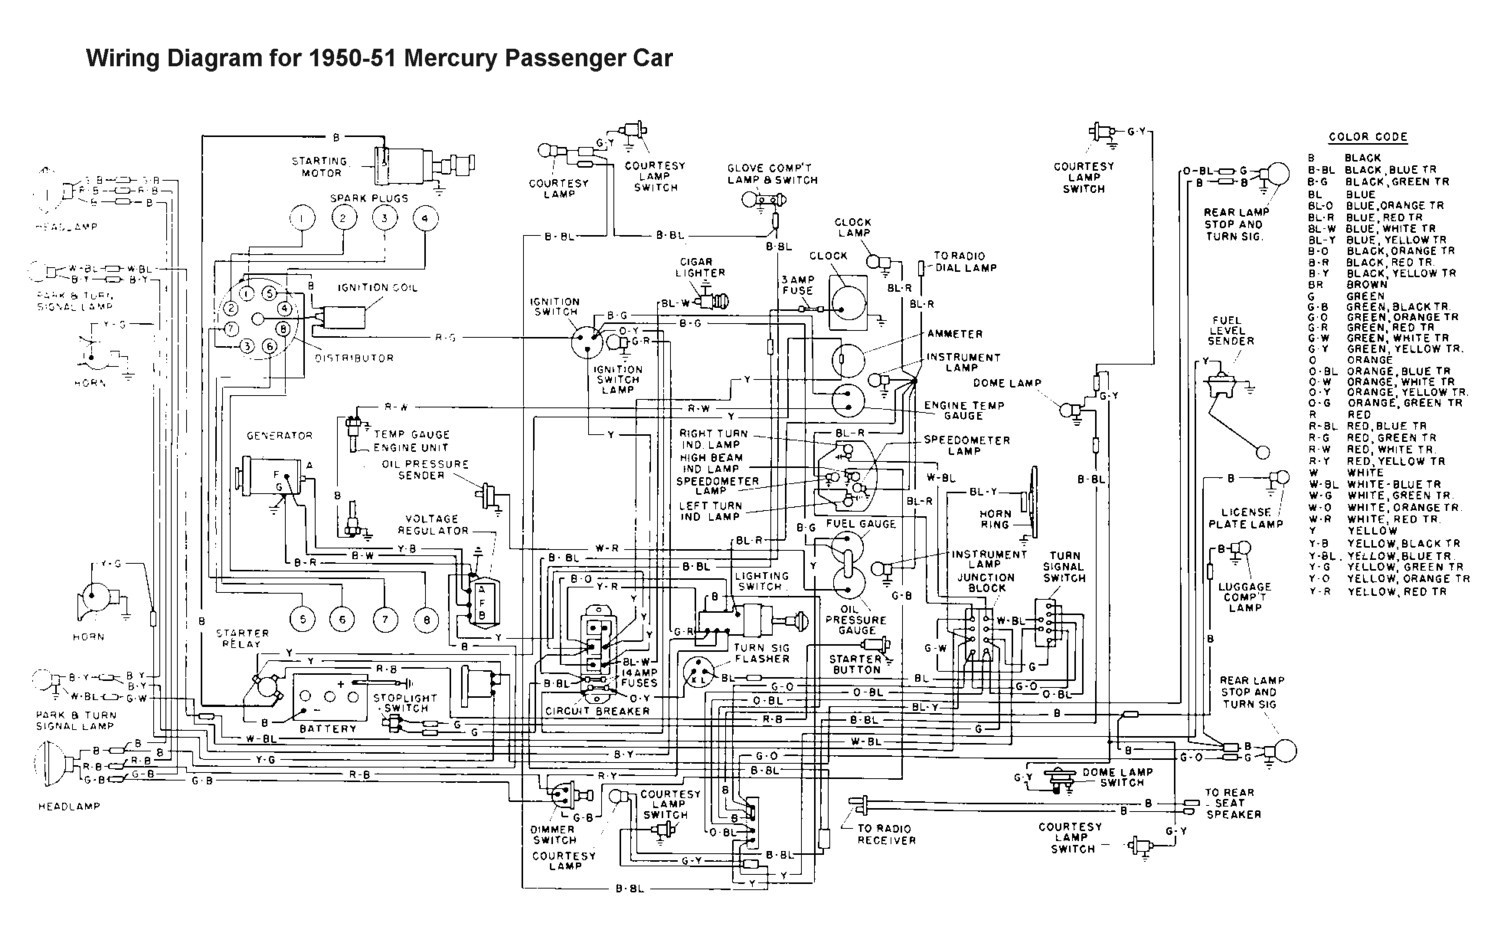 flathead electrical wiring diagrams 120V Electrical Switch Wiring Diagrams wiring for 1950 51 mercury car